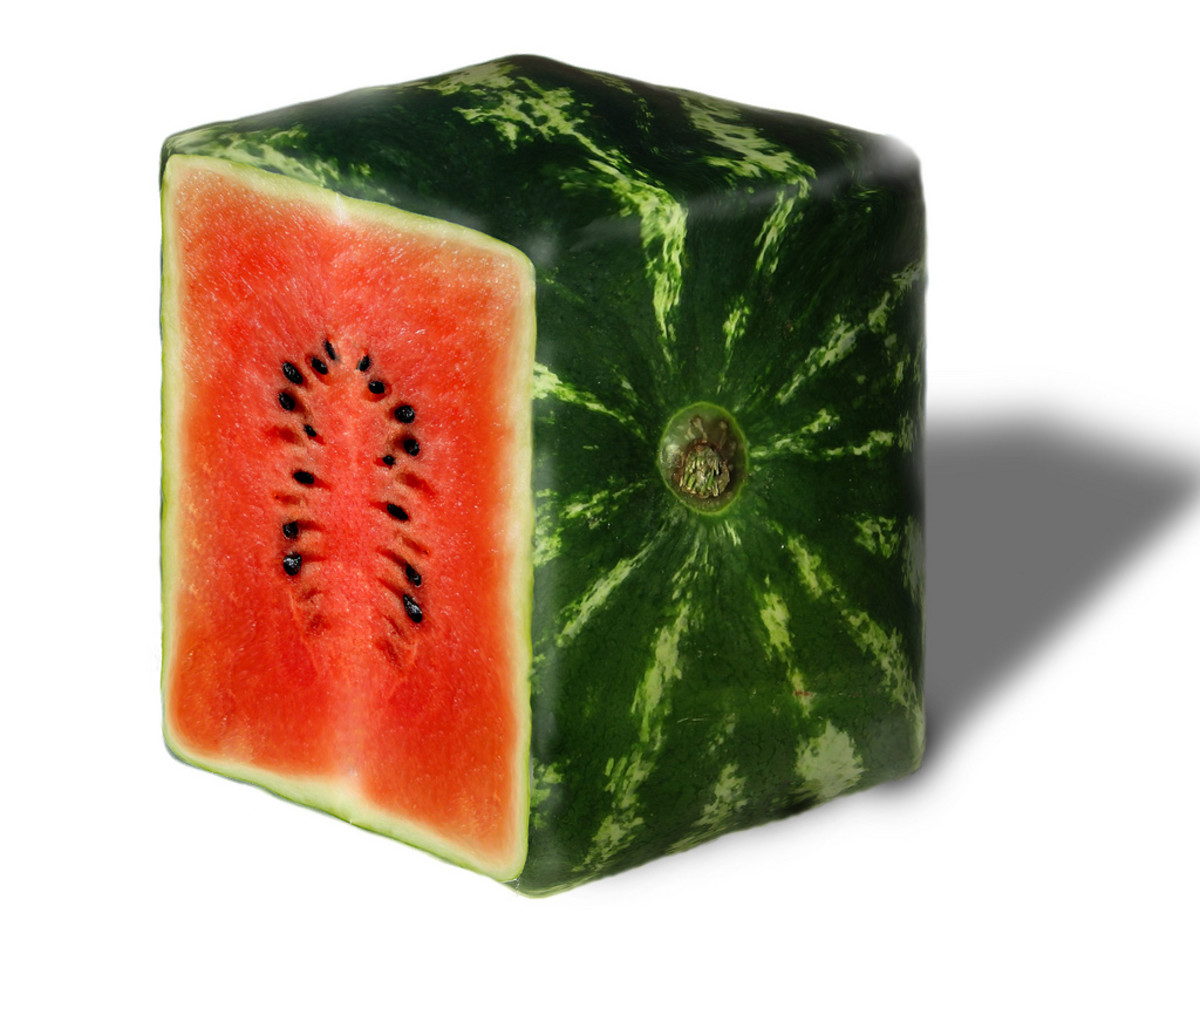 Square Watermelon: A Popular Trend in Japan